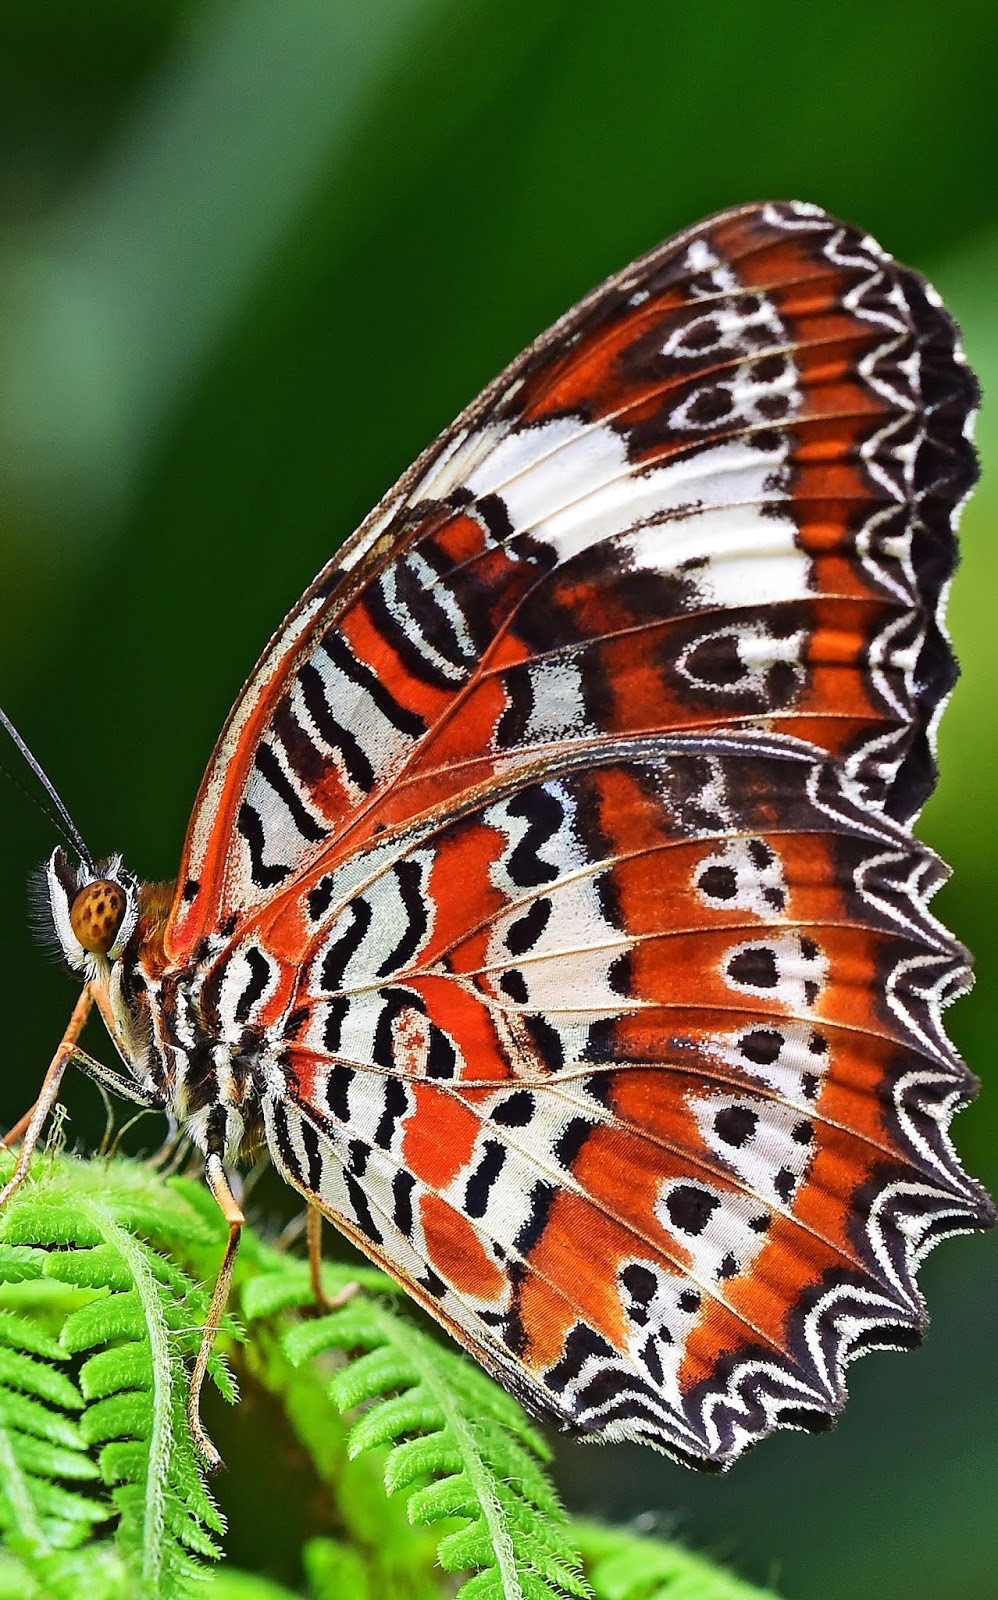 A leopard lacewing butterfly.